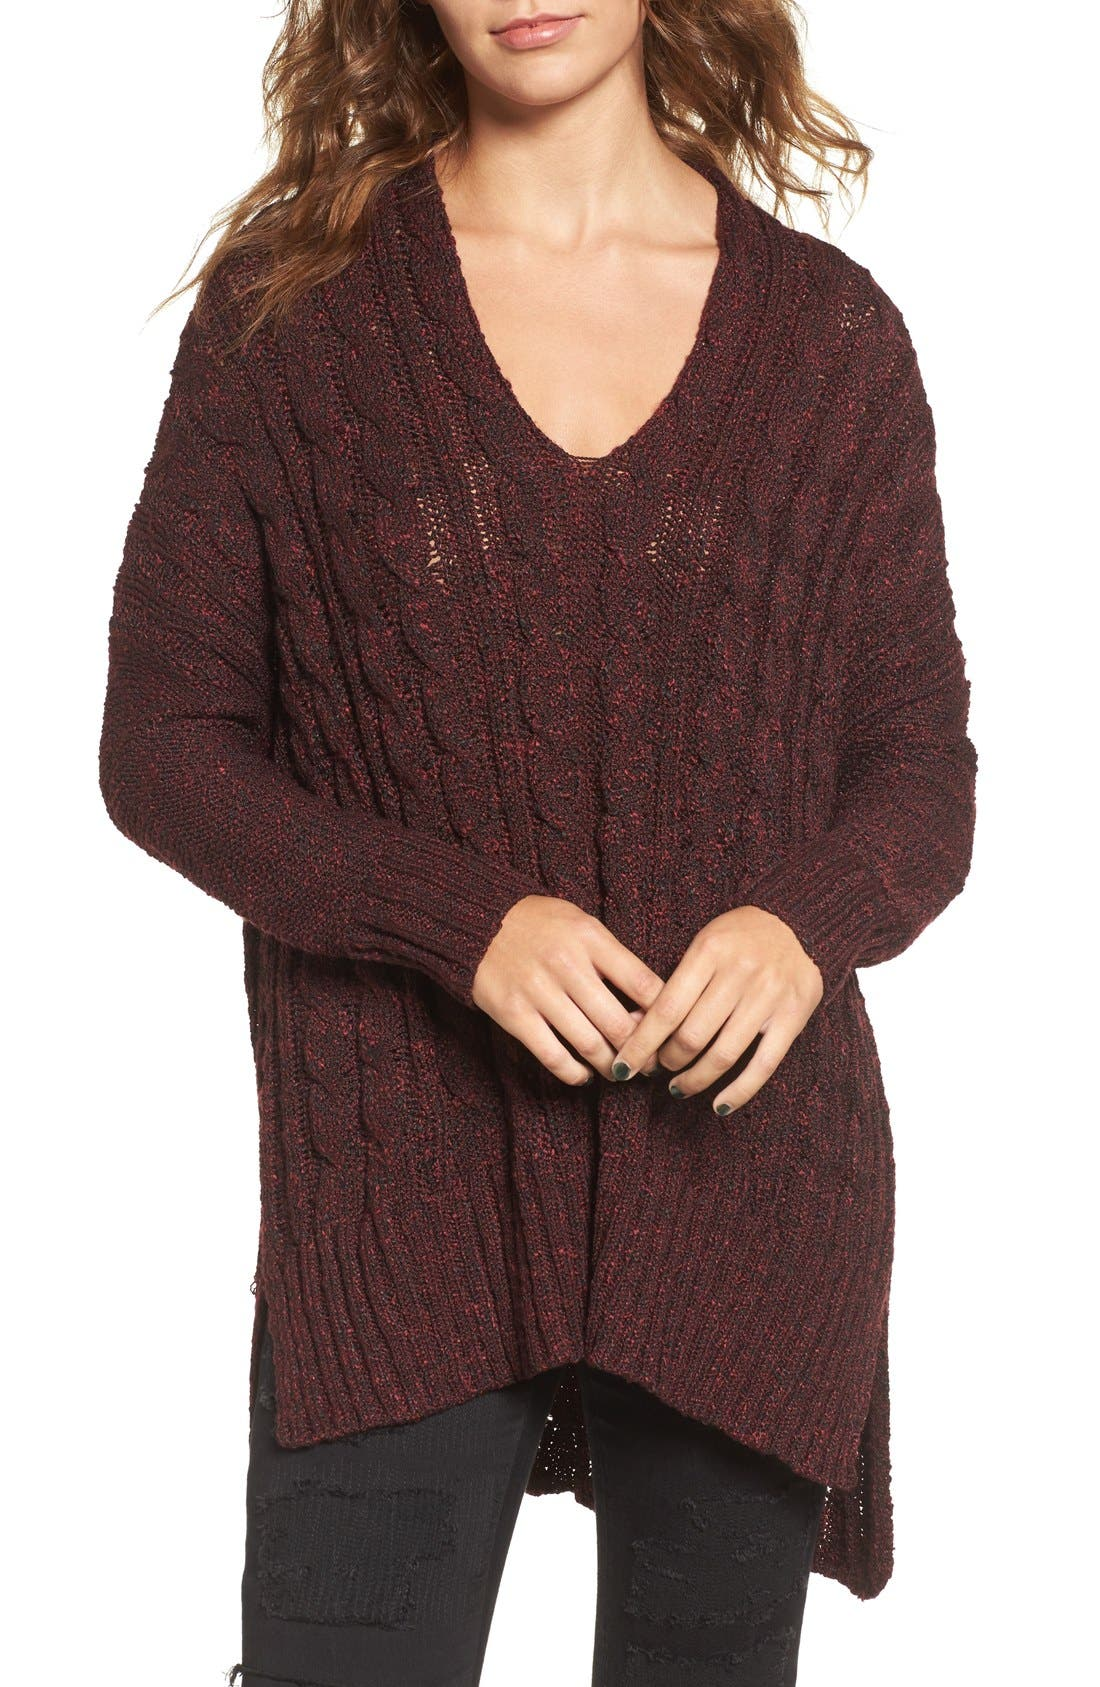 Marled Cable Knit Pullover,                         Main,                         color, Burgundy/ Black Marl